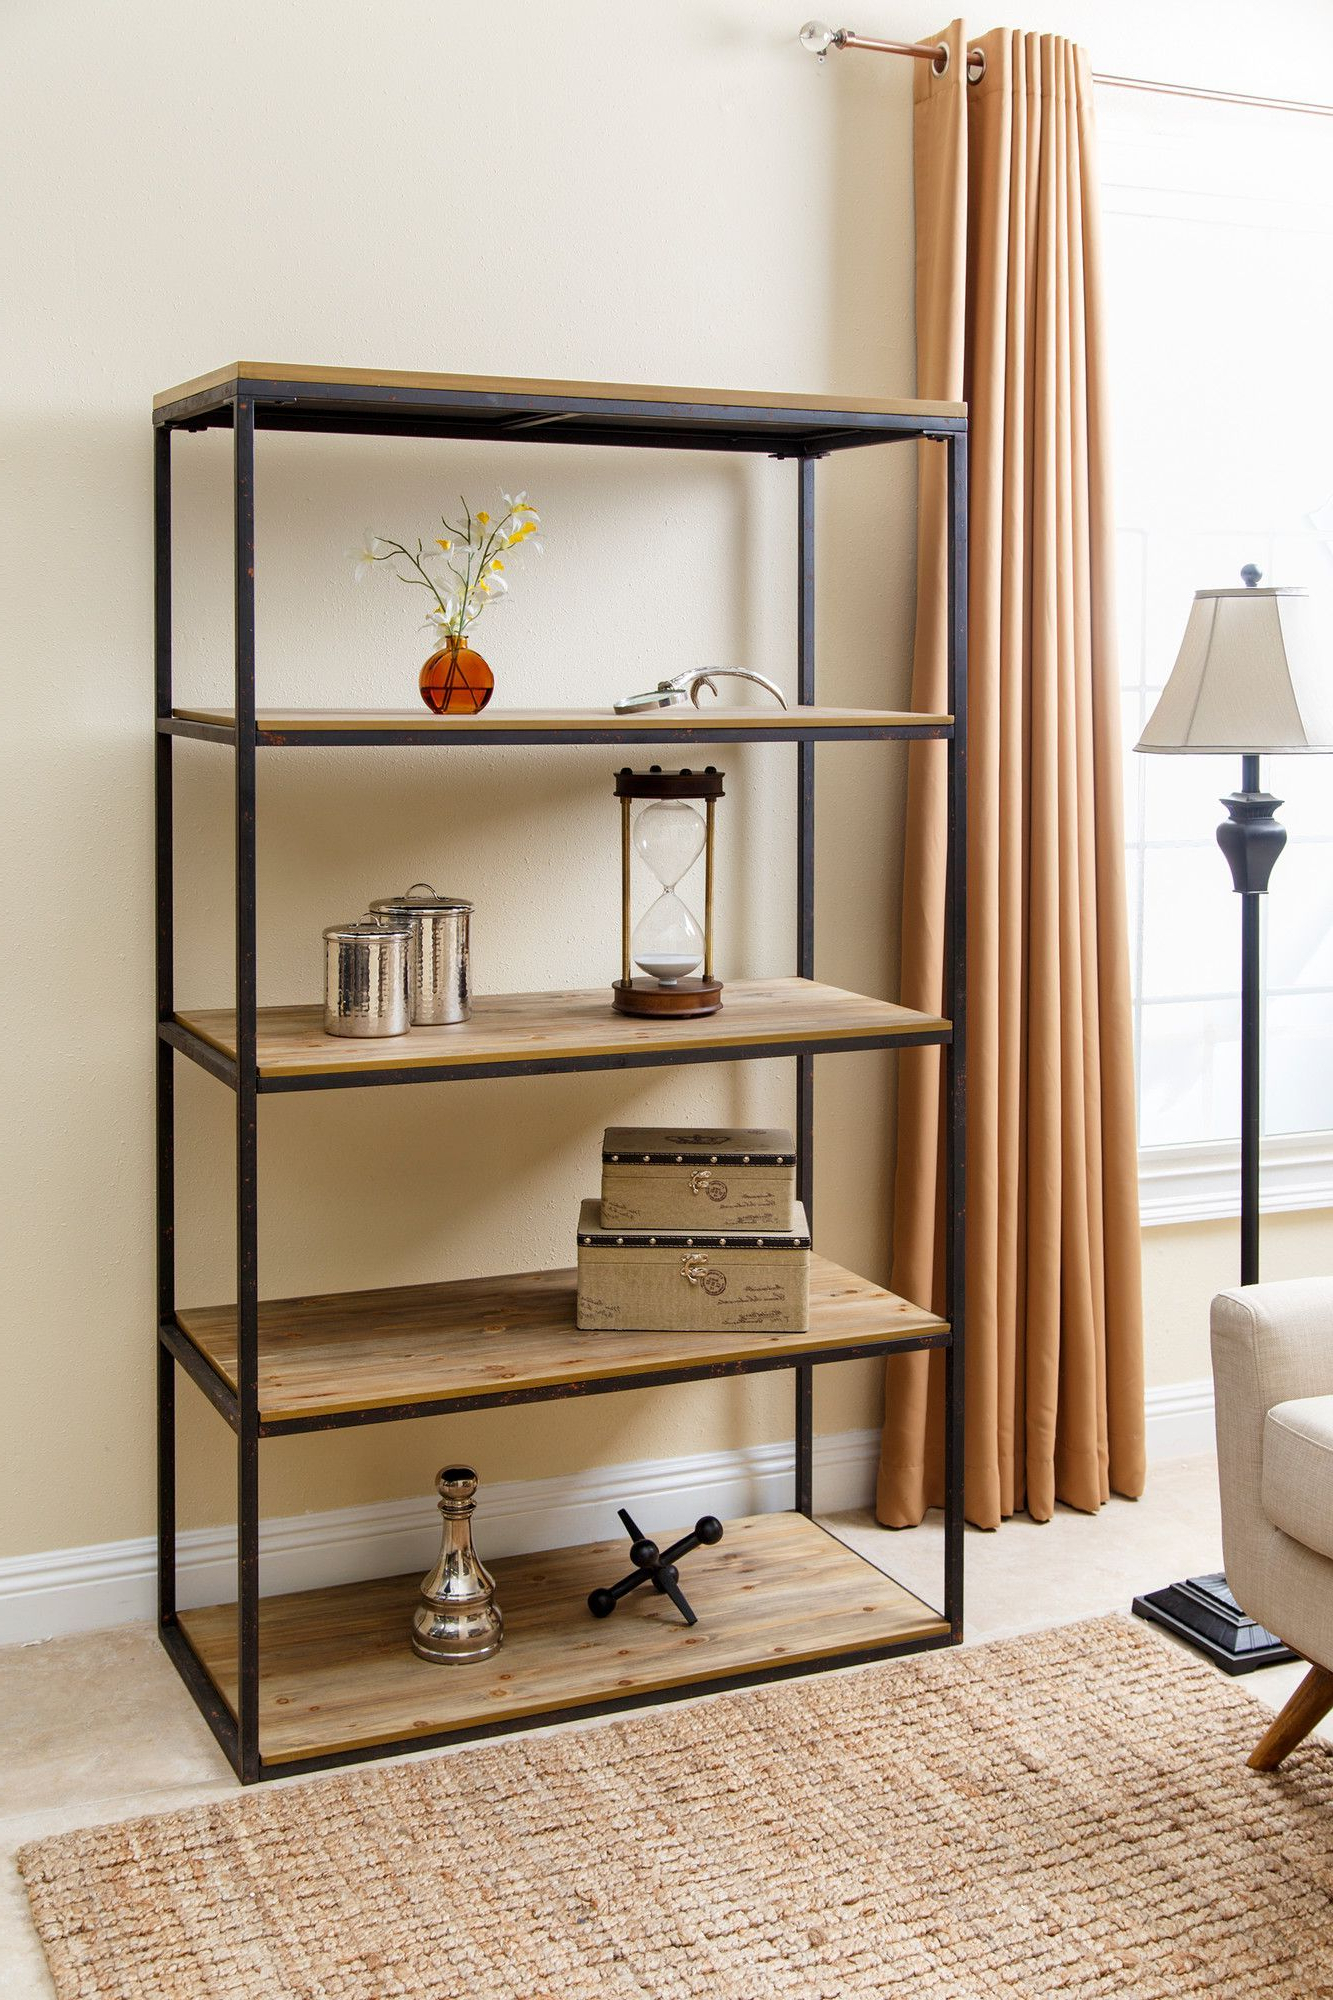 Capriola Etagere Bookcase (View 15 of 20)